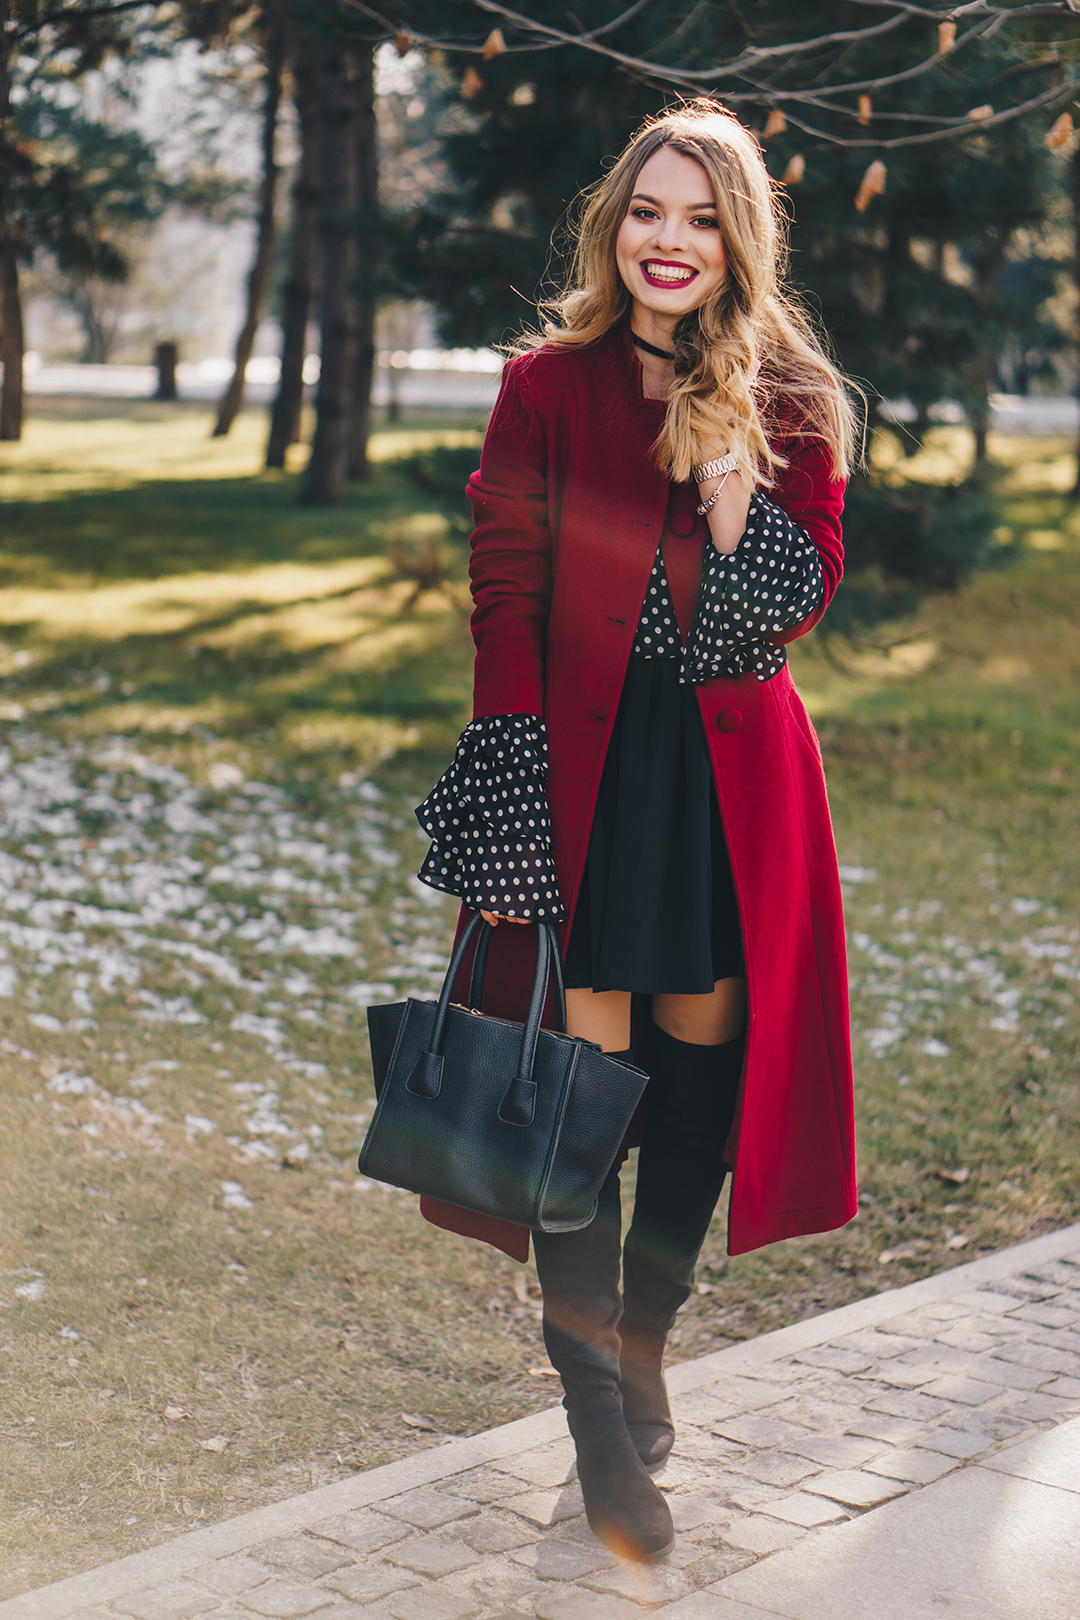 red-wool-coat-polka-dots-bell-sleeves-blouse-winter-outfit-11